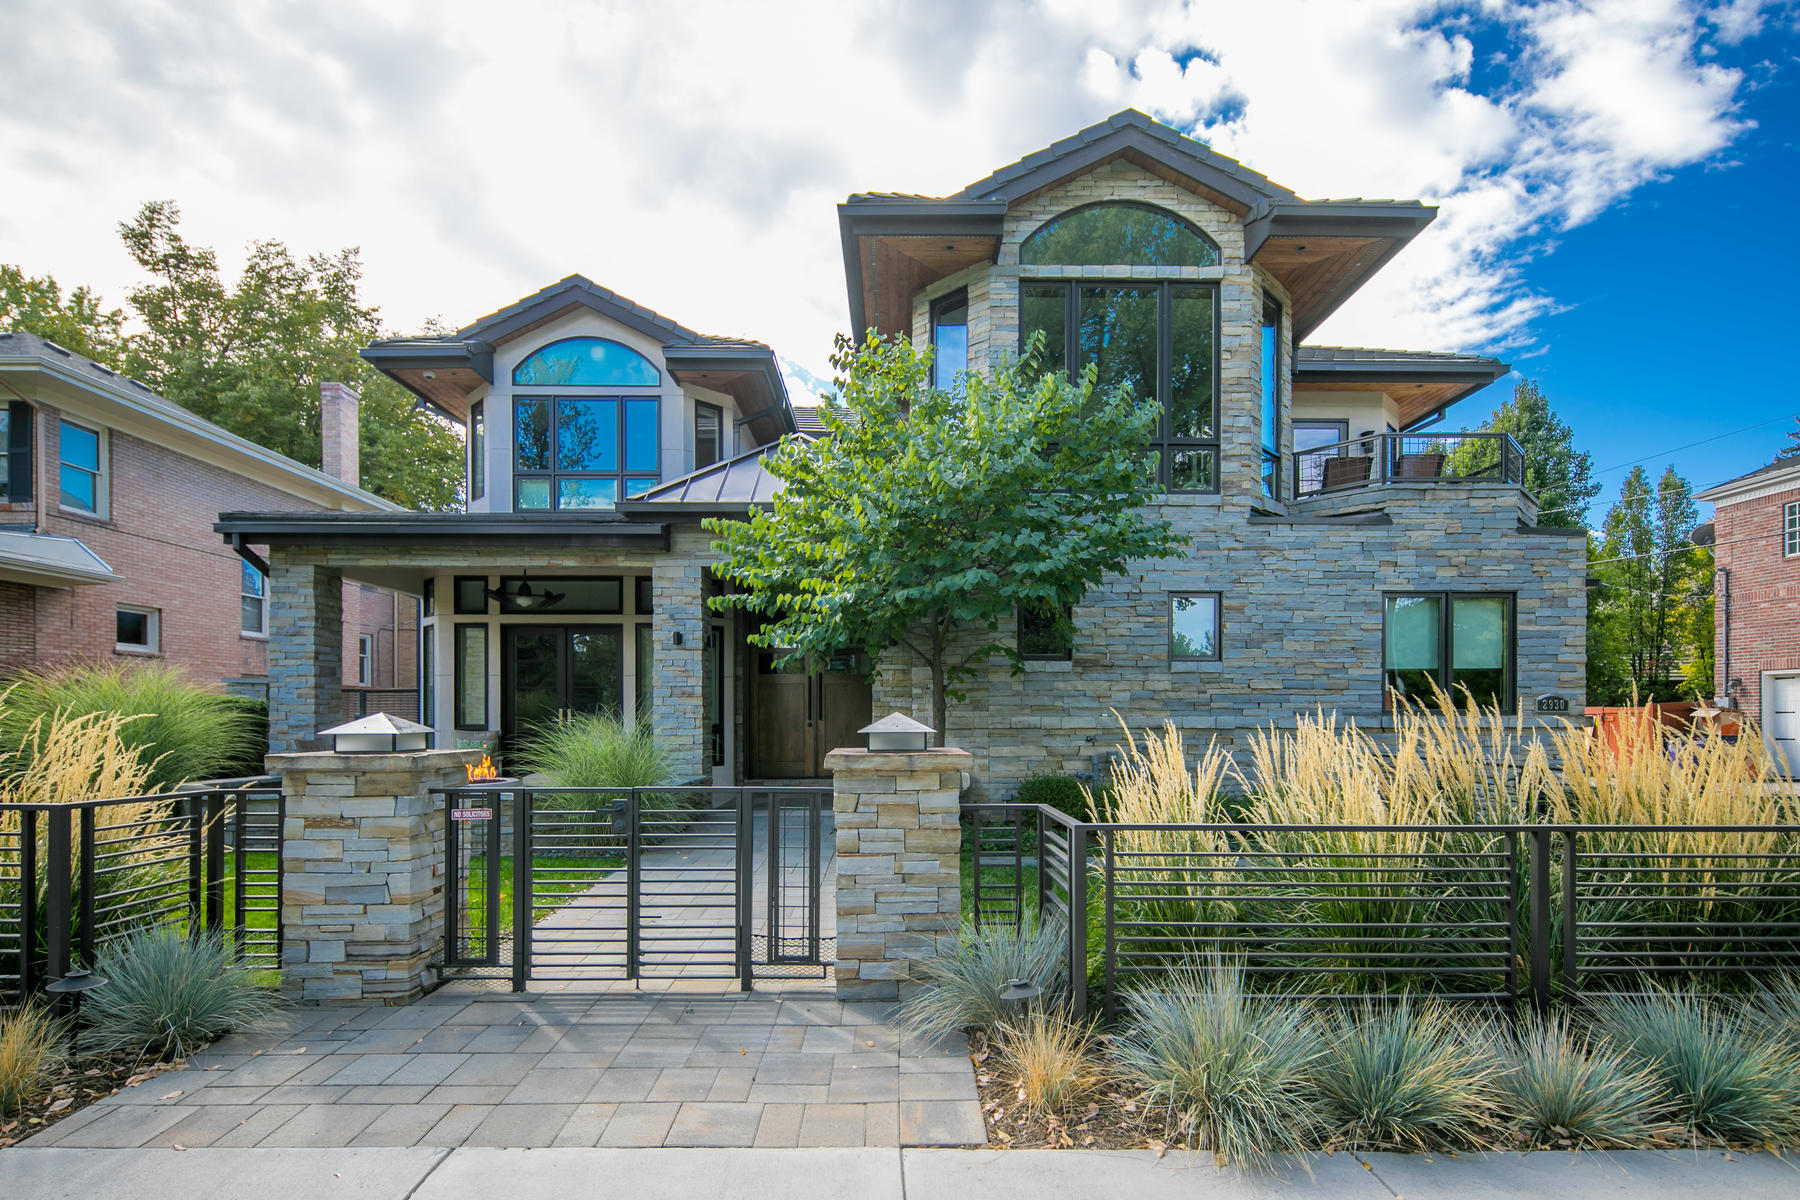 Single Family Homes for Sale at Beautiful Custom Home in Observatory Park 2930 East Iliff Ave Denver, Colorado 80210 United States